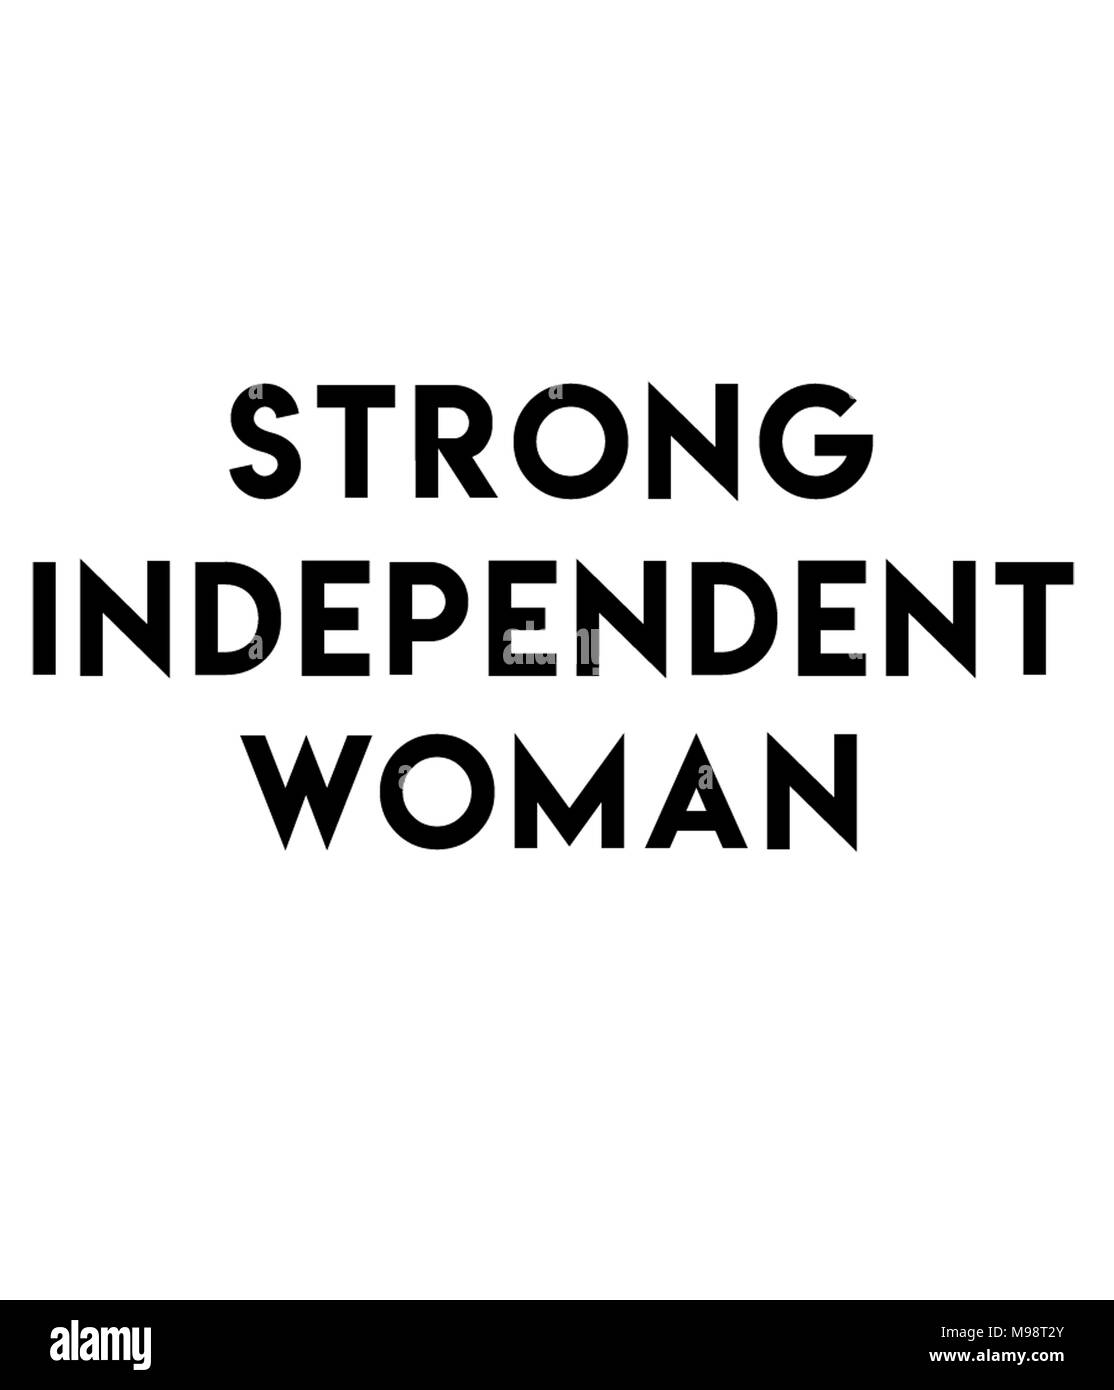 Strong Independent Woman Quotes Inspirational Stock Photo